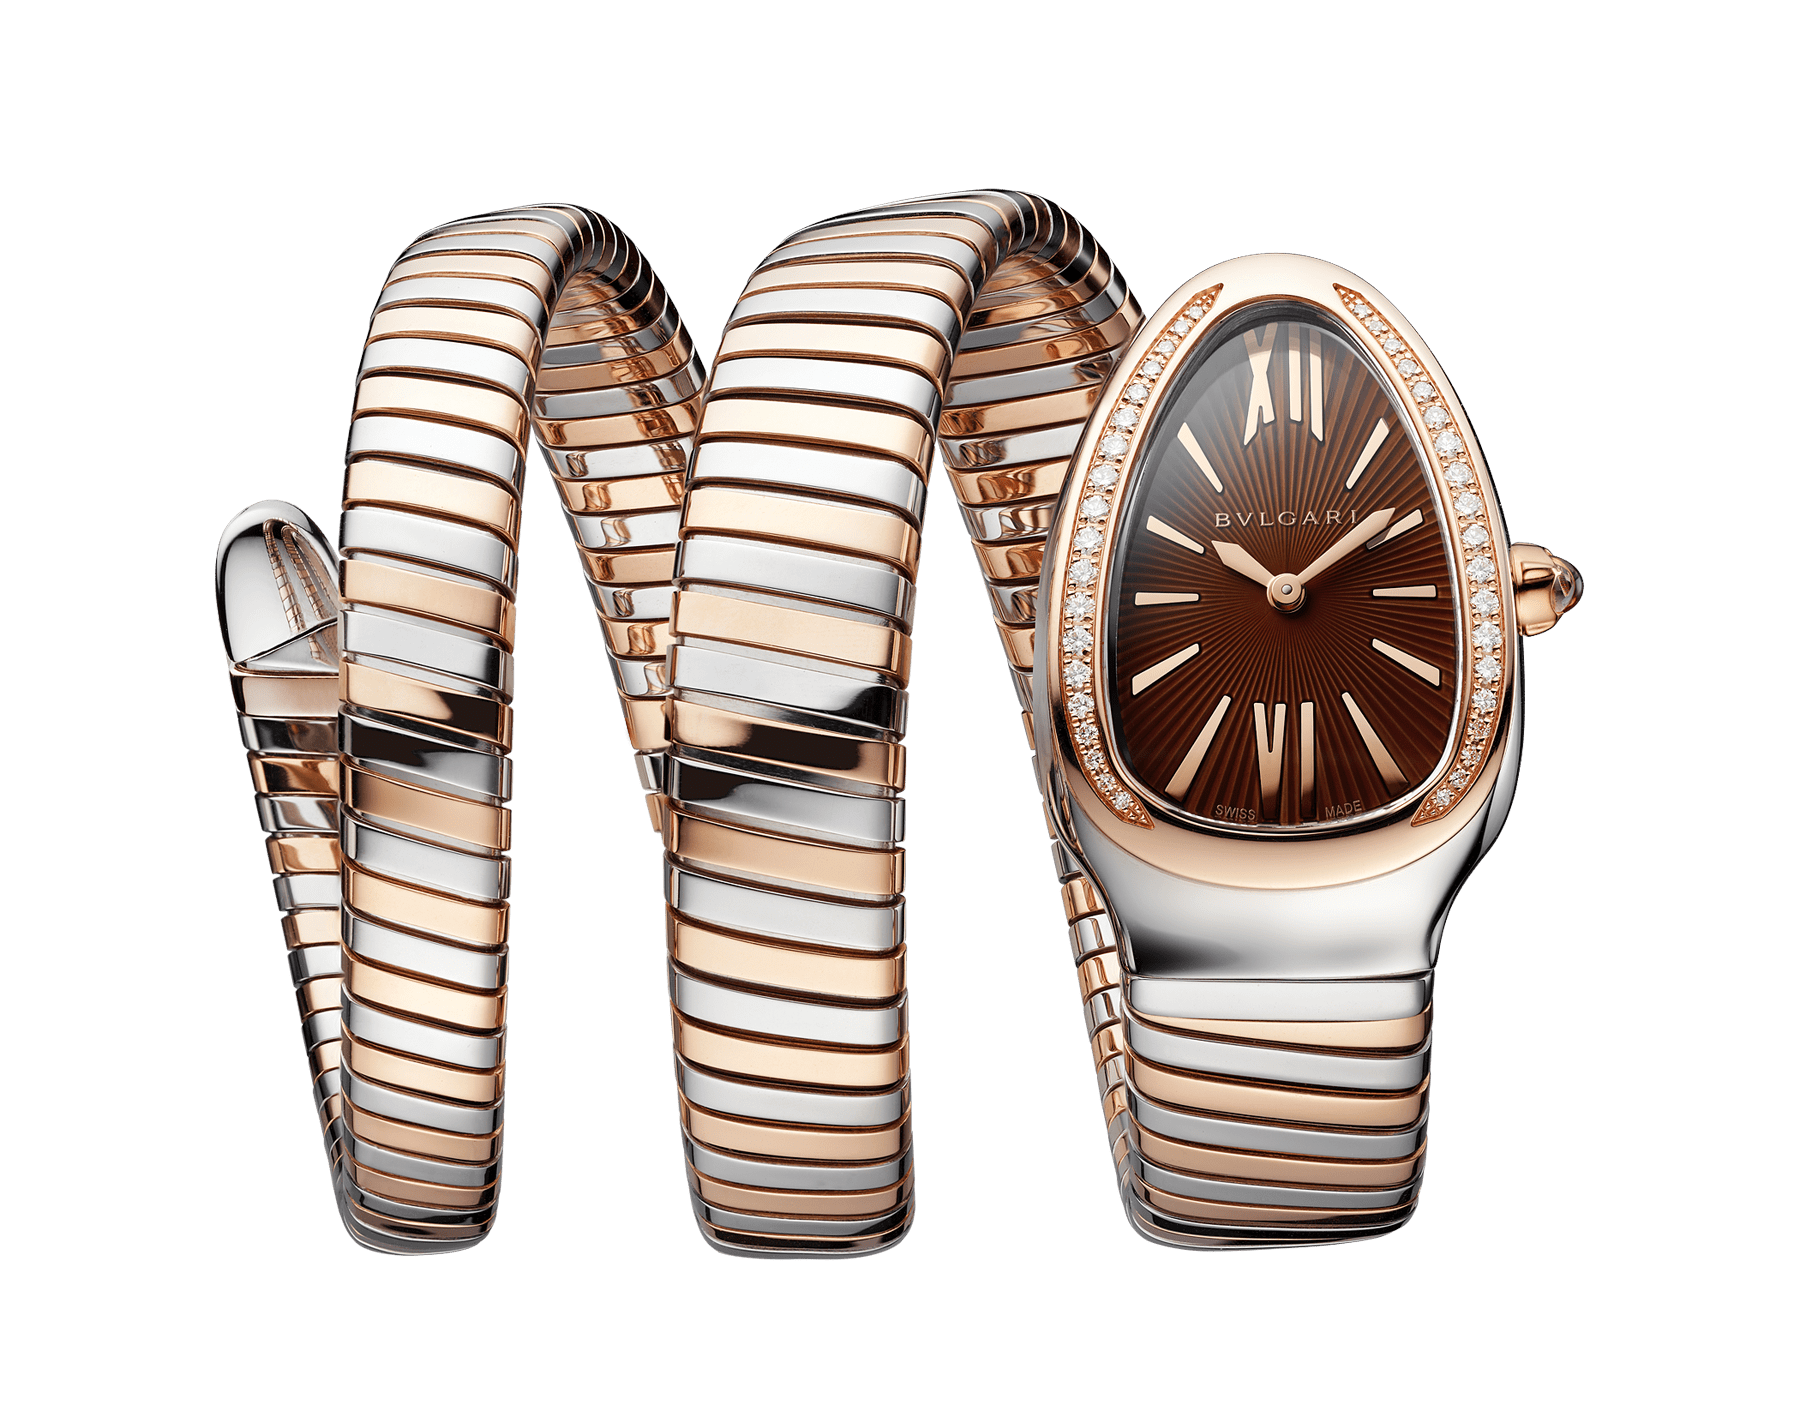 Serpenti Tubogas double spiral watch with stainless steel case, 18 kt rose gold bezel set with brilliant-cut diamonds, brown dial with guilloché soleil treatment, stainless steel and 18 kt rose gold bracelet 103070 image 1